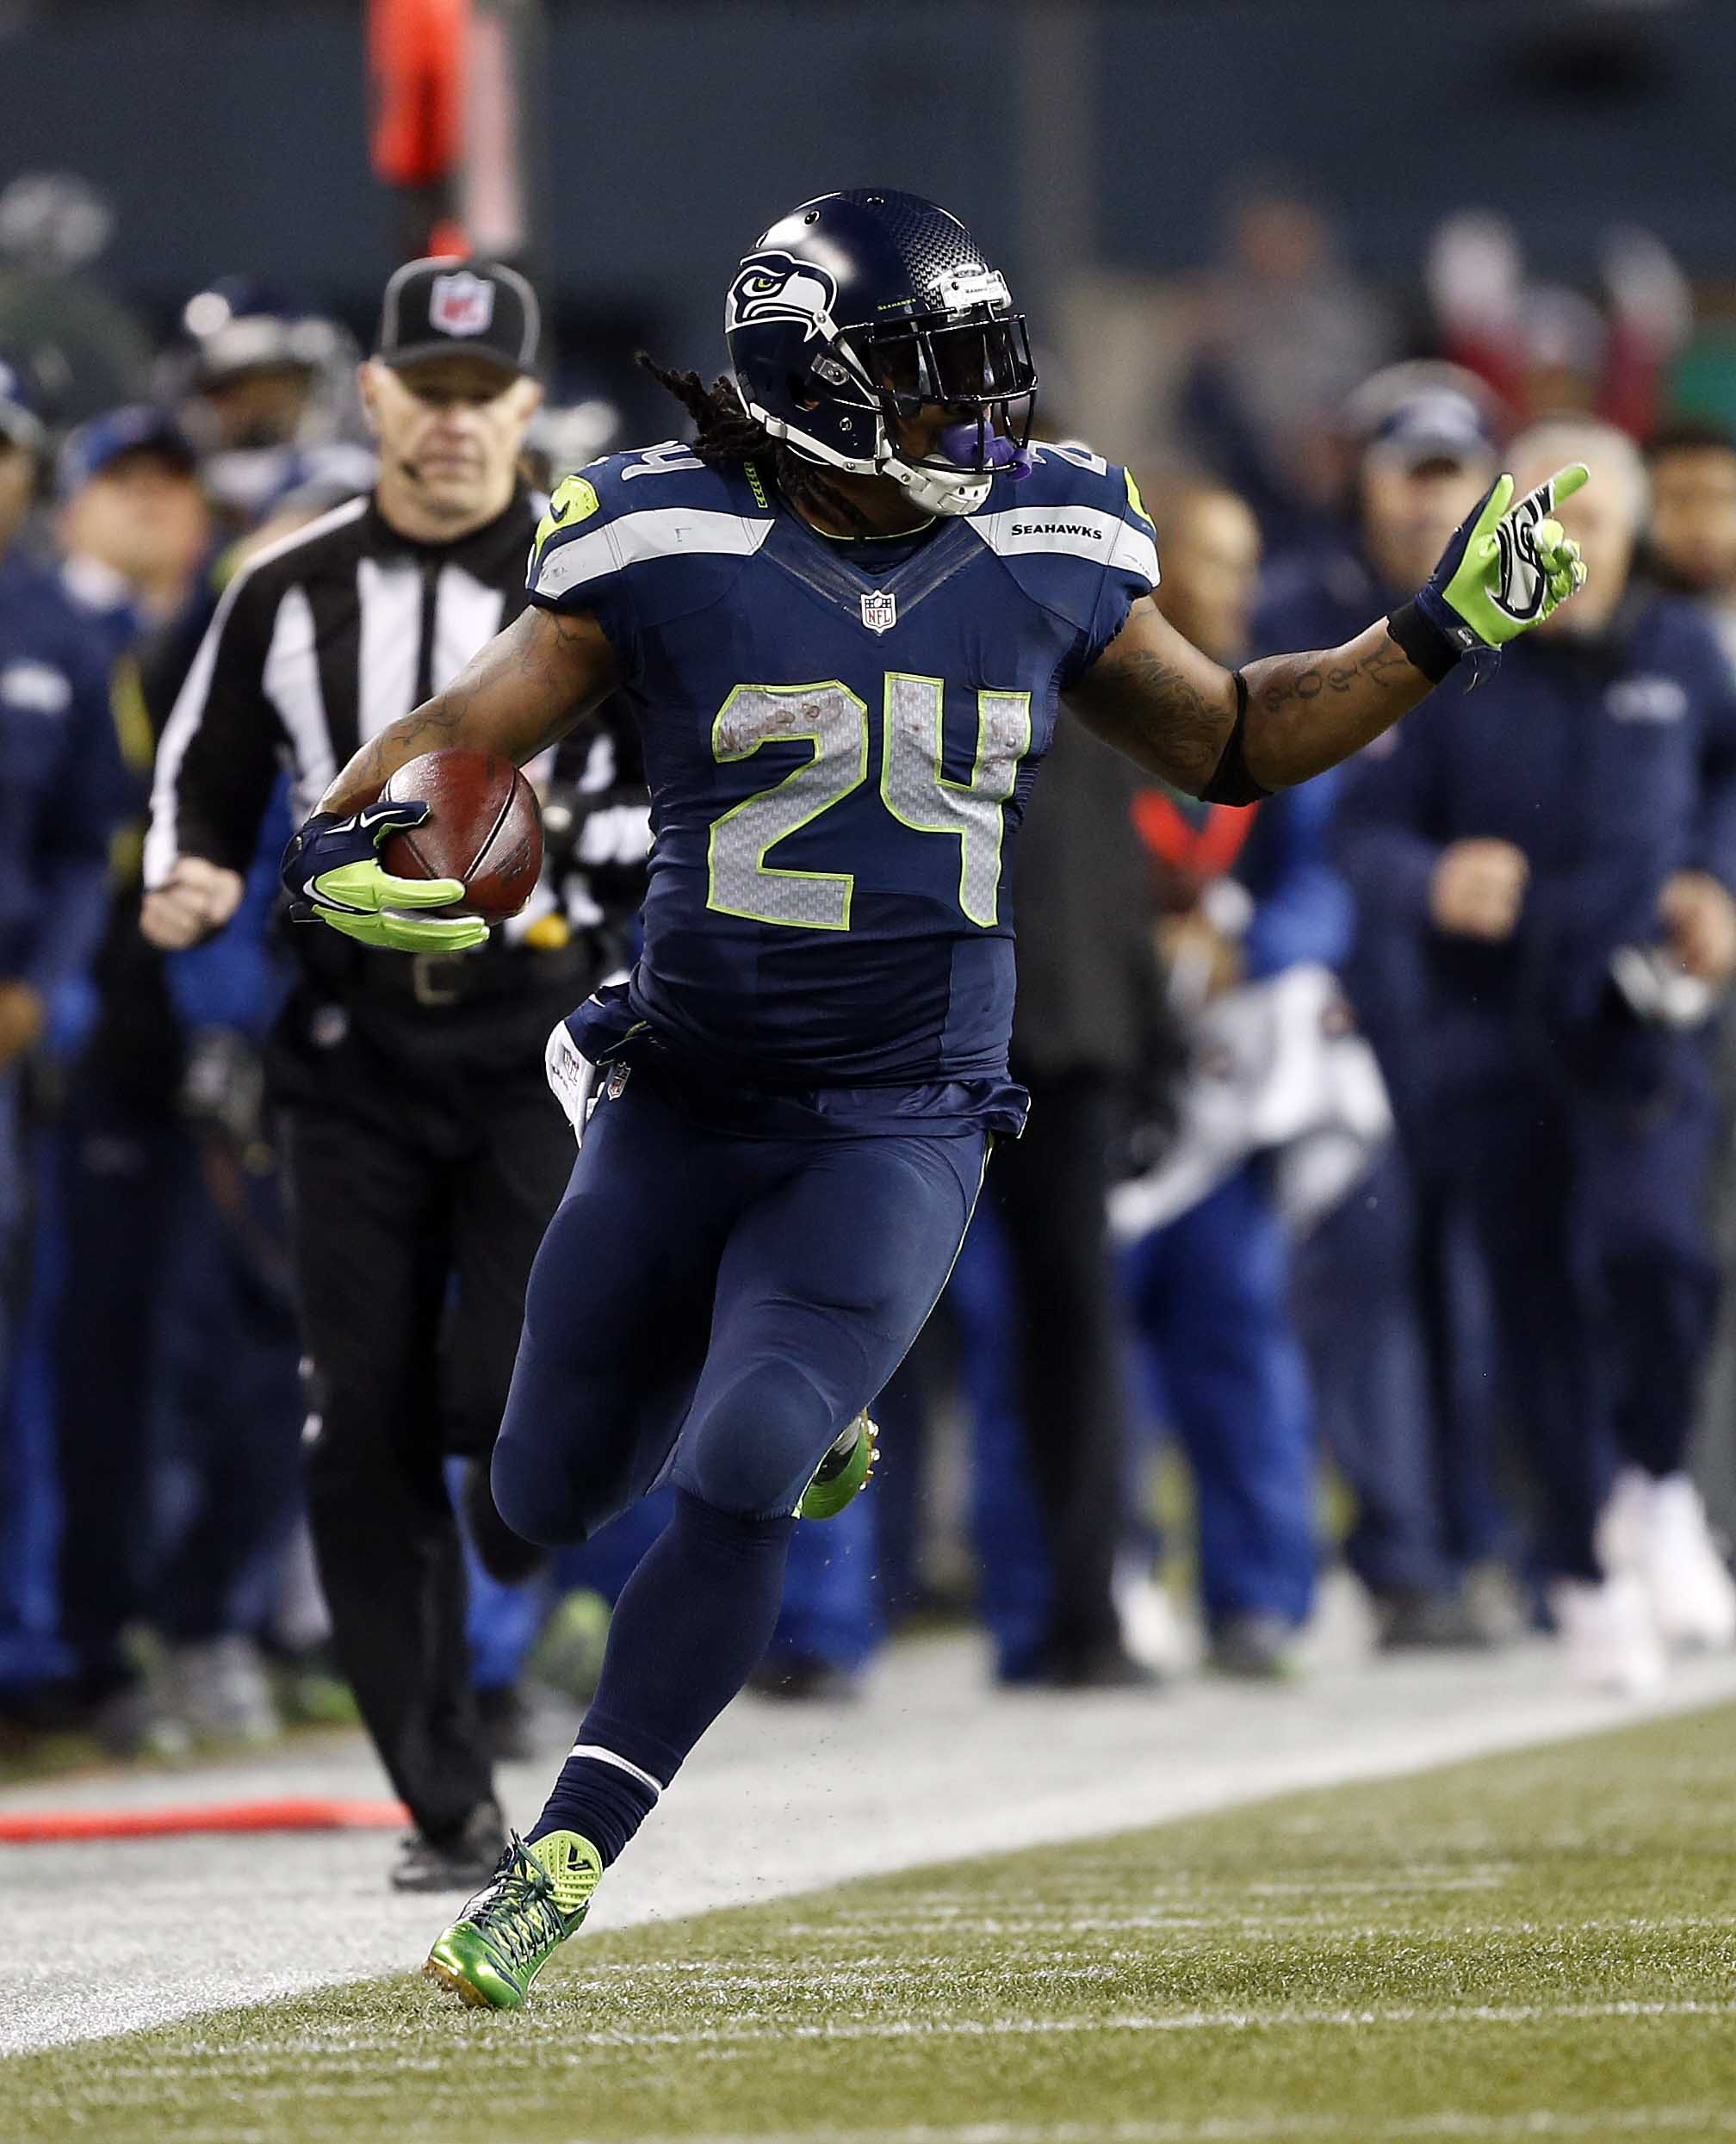 Seahawks now want to re-sign Marshawn Lynch, according to report